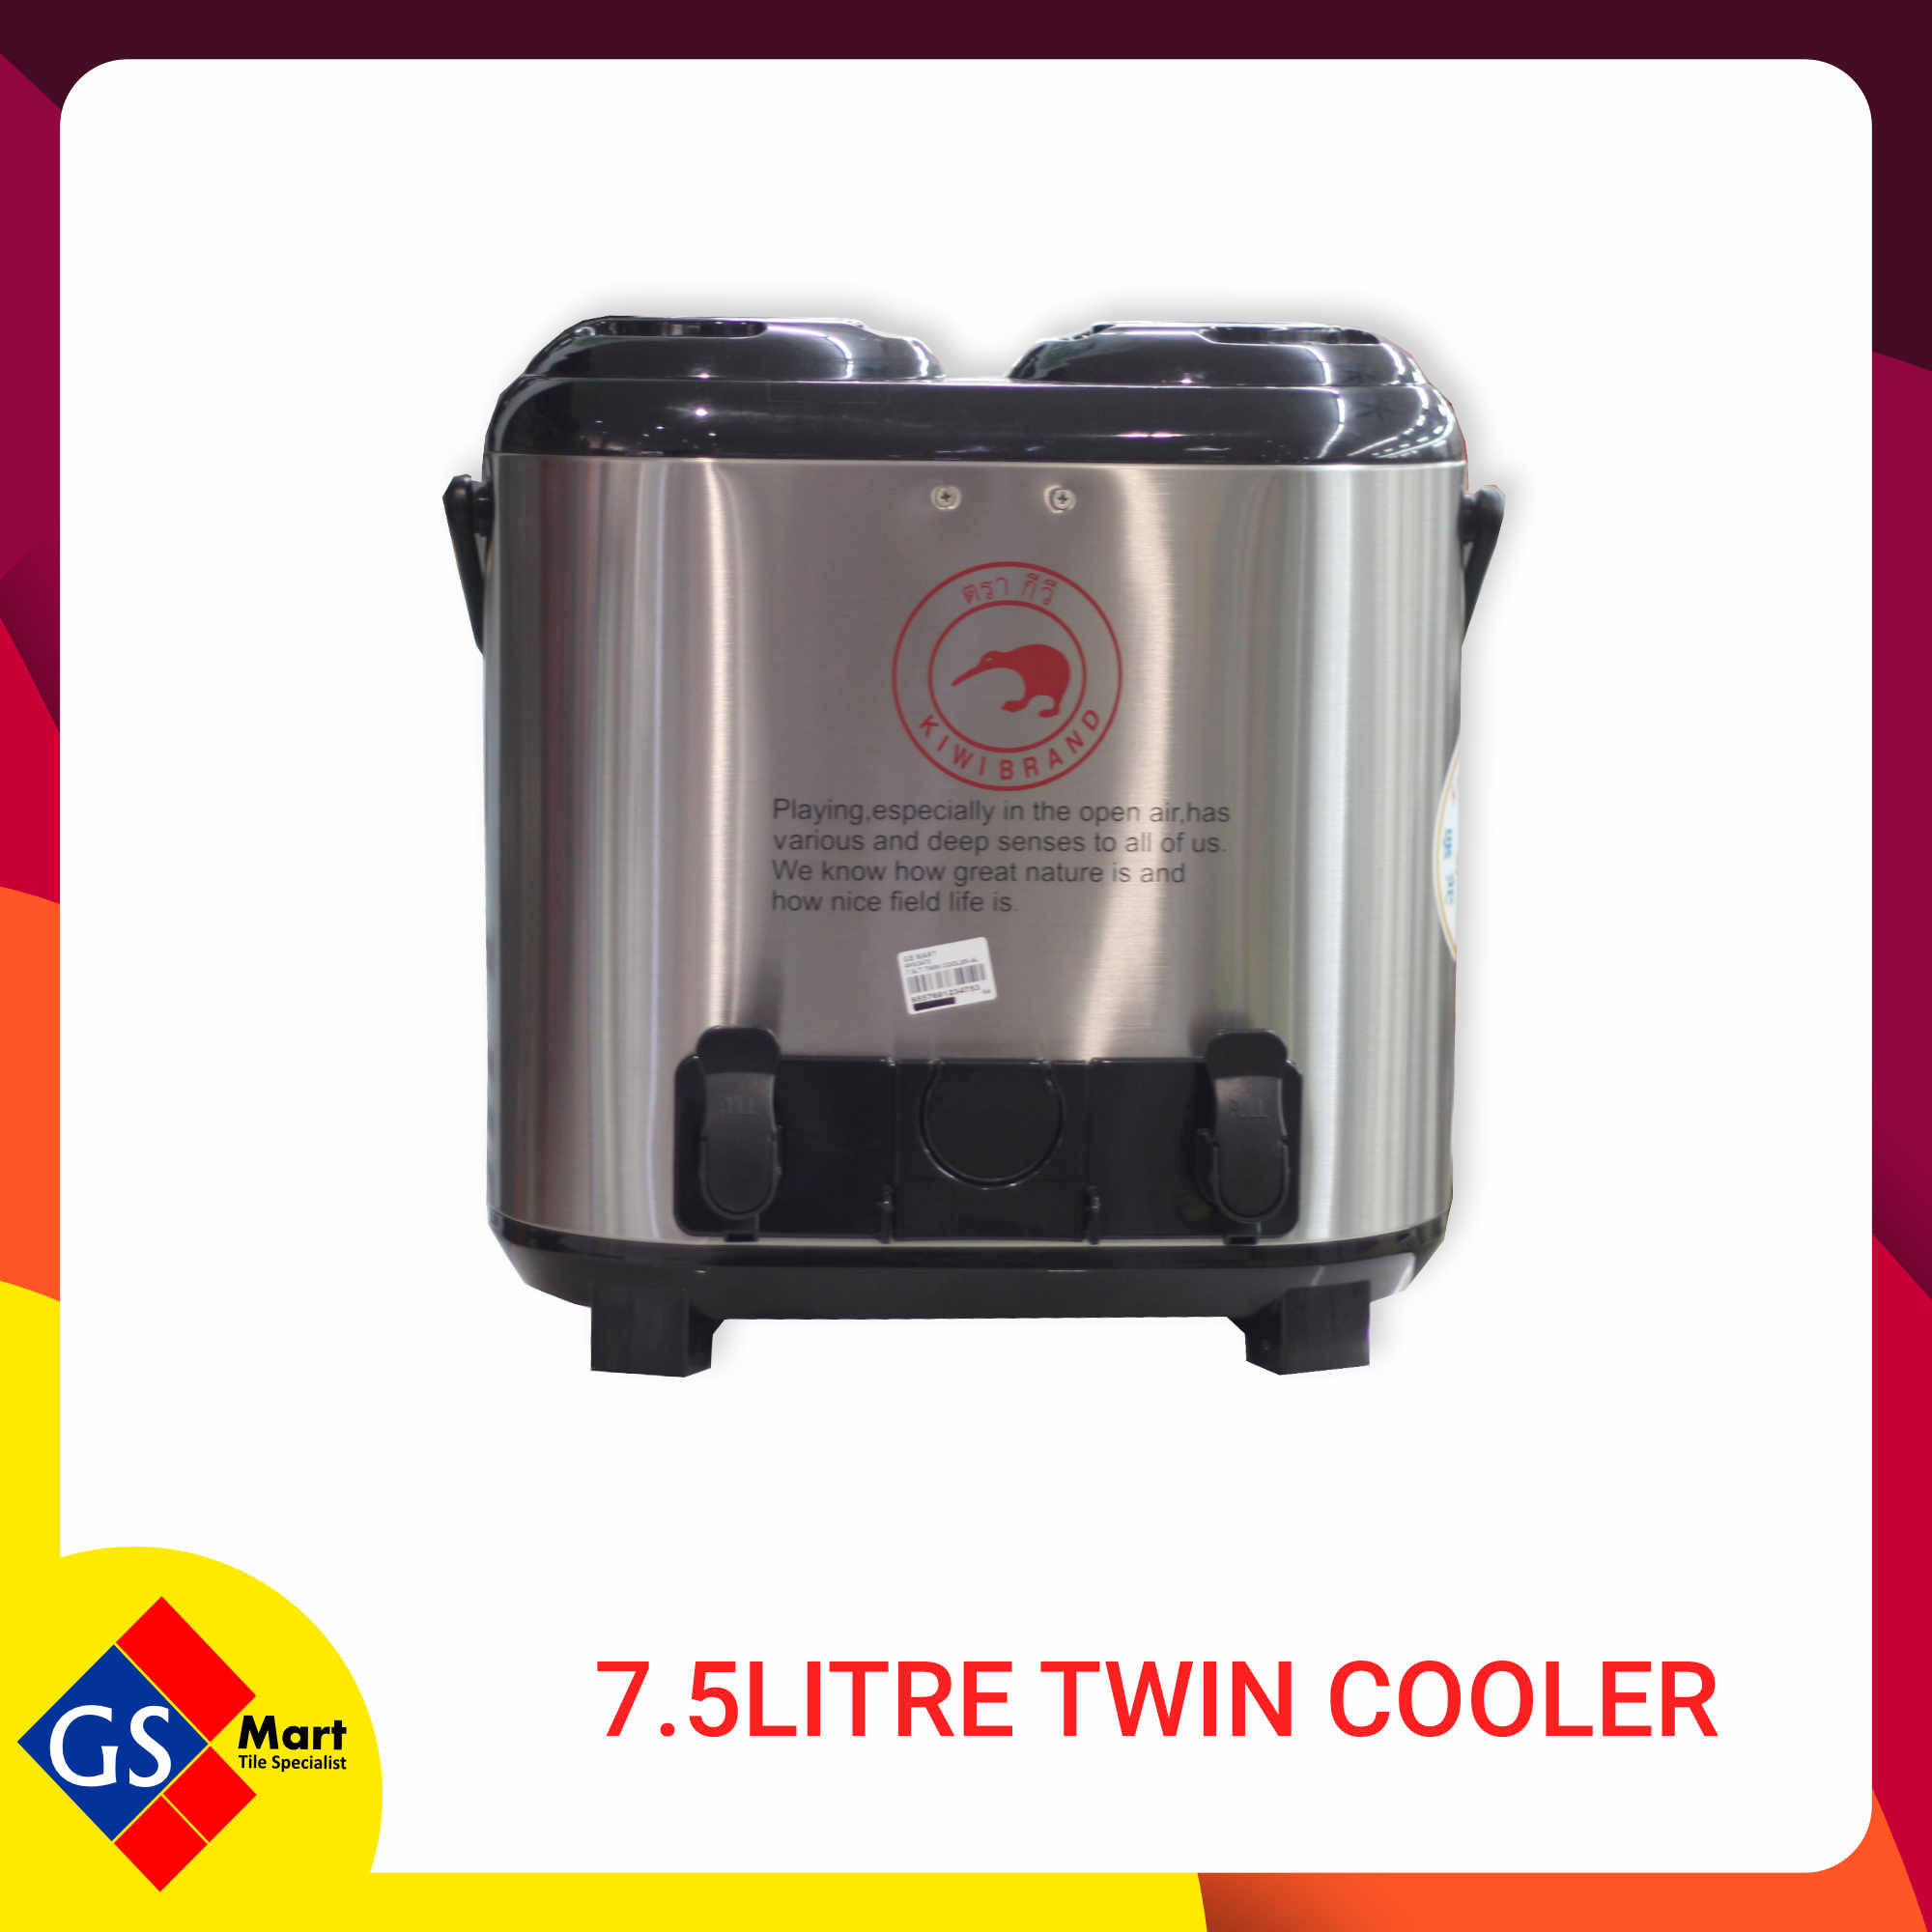 image of 7.5LITRE TWIN COOLER